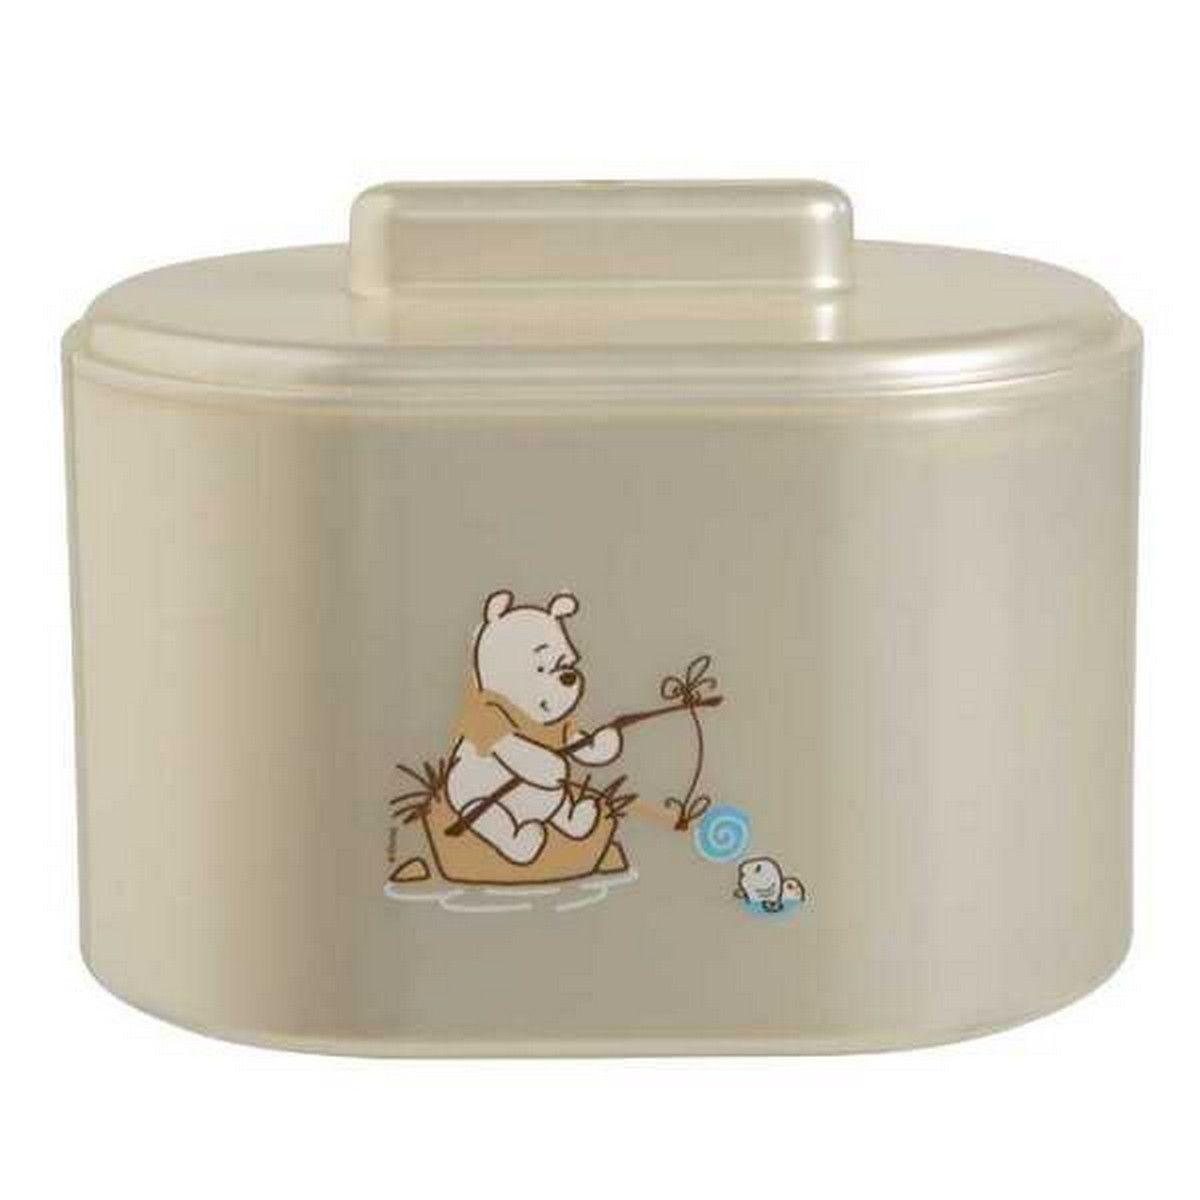 Bebe Jou Kombi-Box Adorable Pooh A